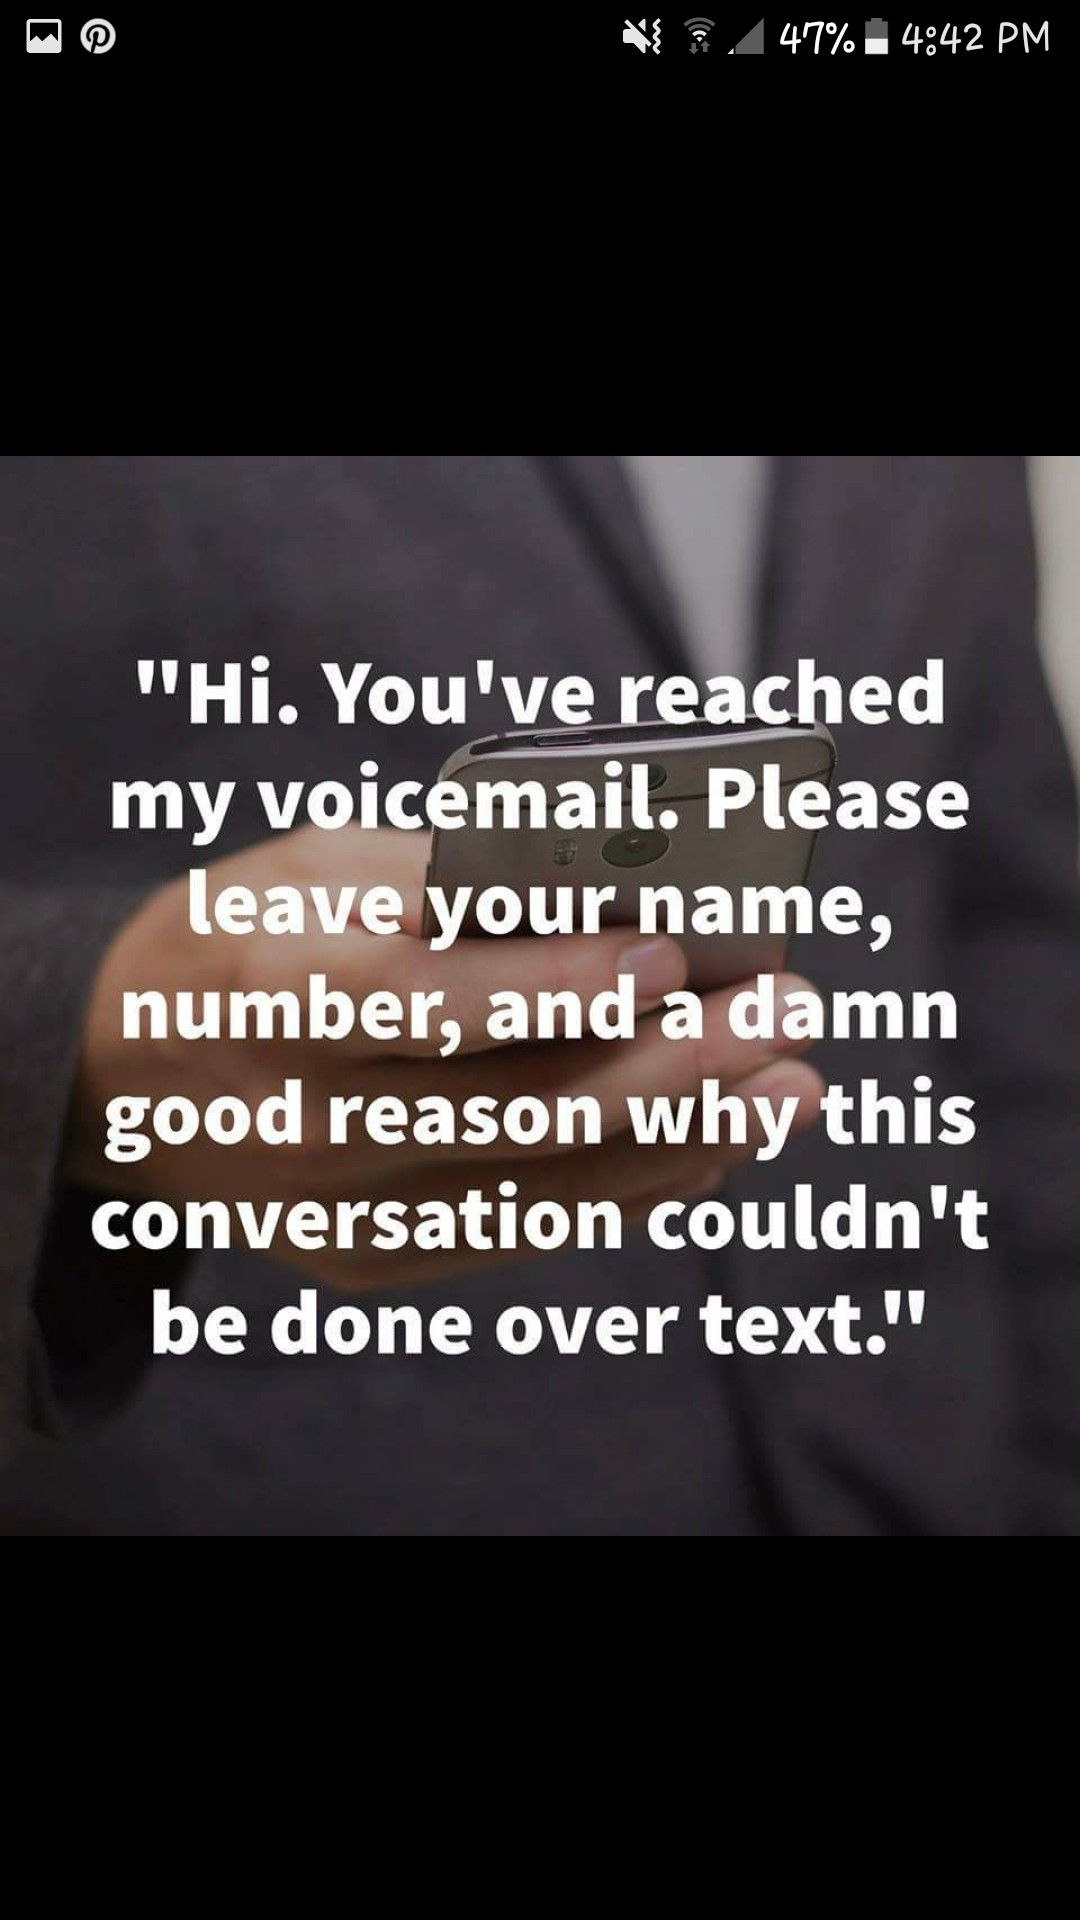 Short Funny Voicemail Greetings : short, funny, voicemail, greetings, Funny, Voicemail, Ideas, Funny,, Voicemail,, Greeting